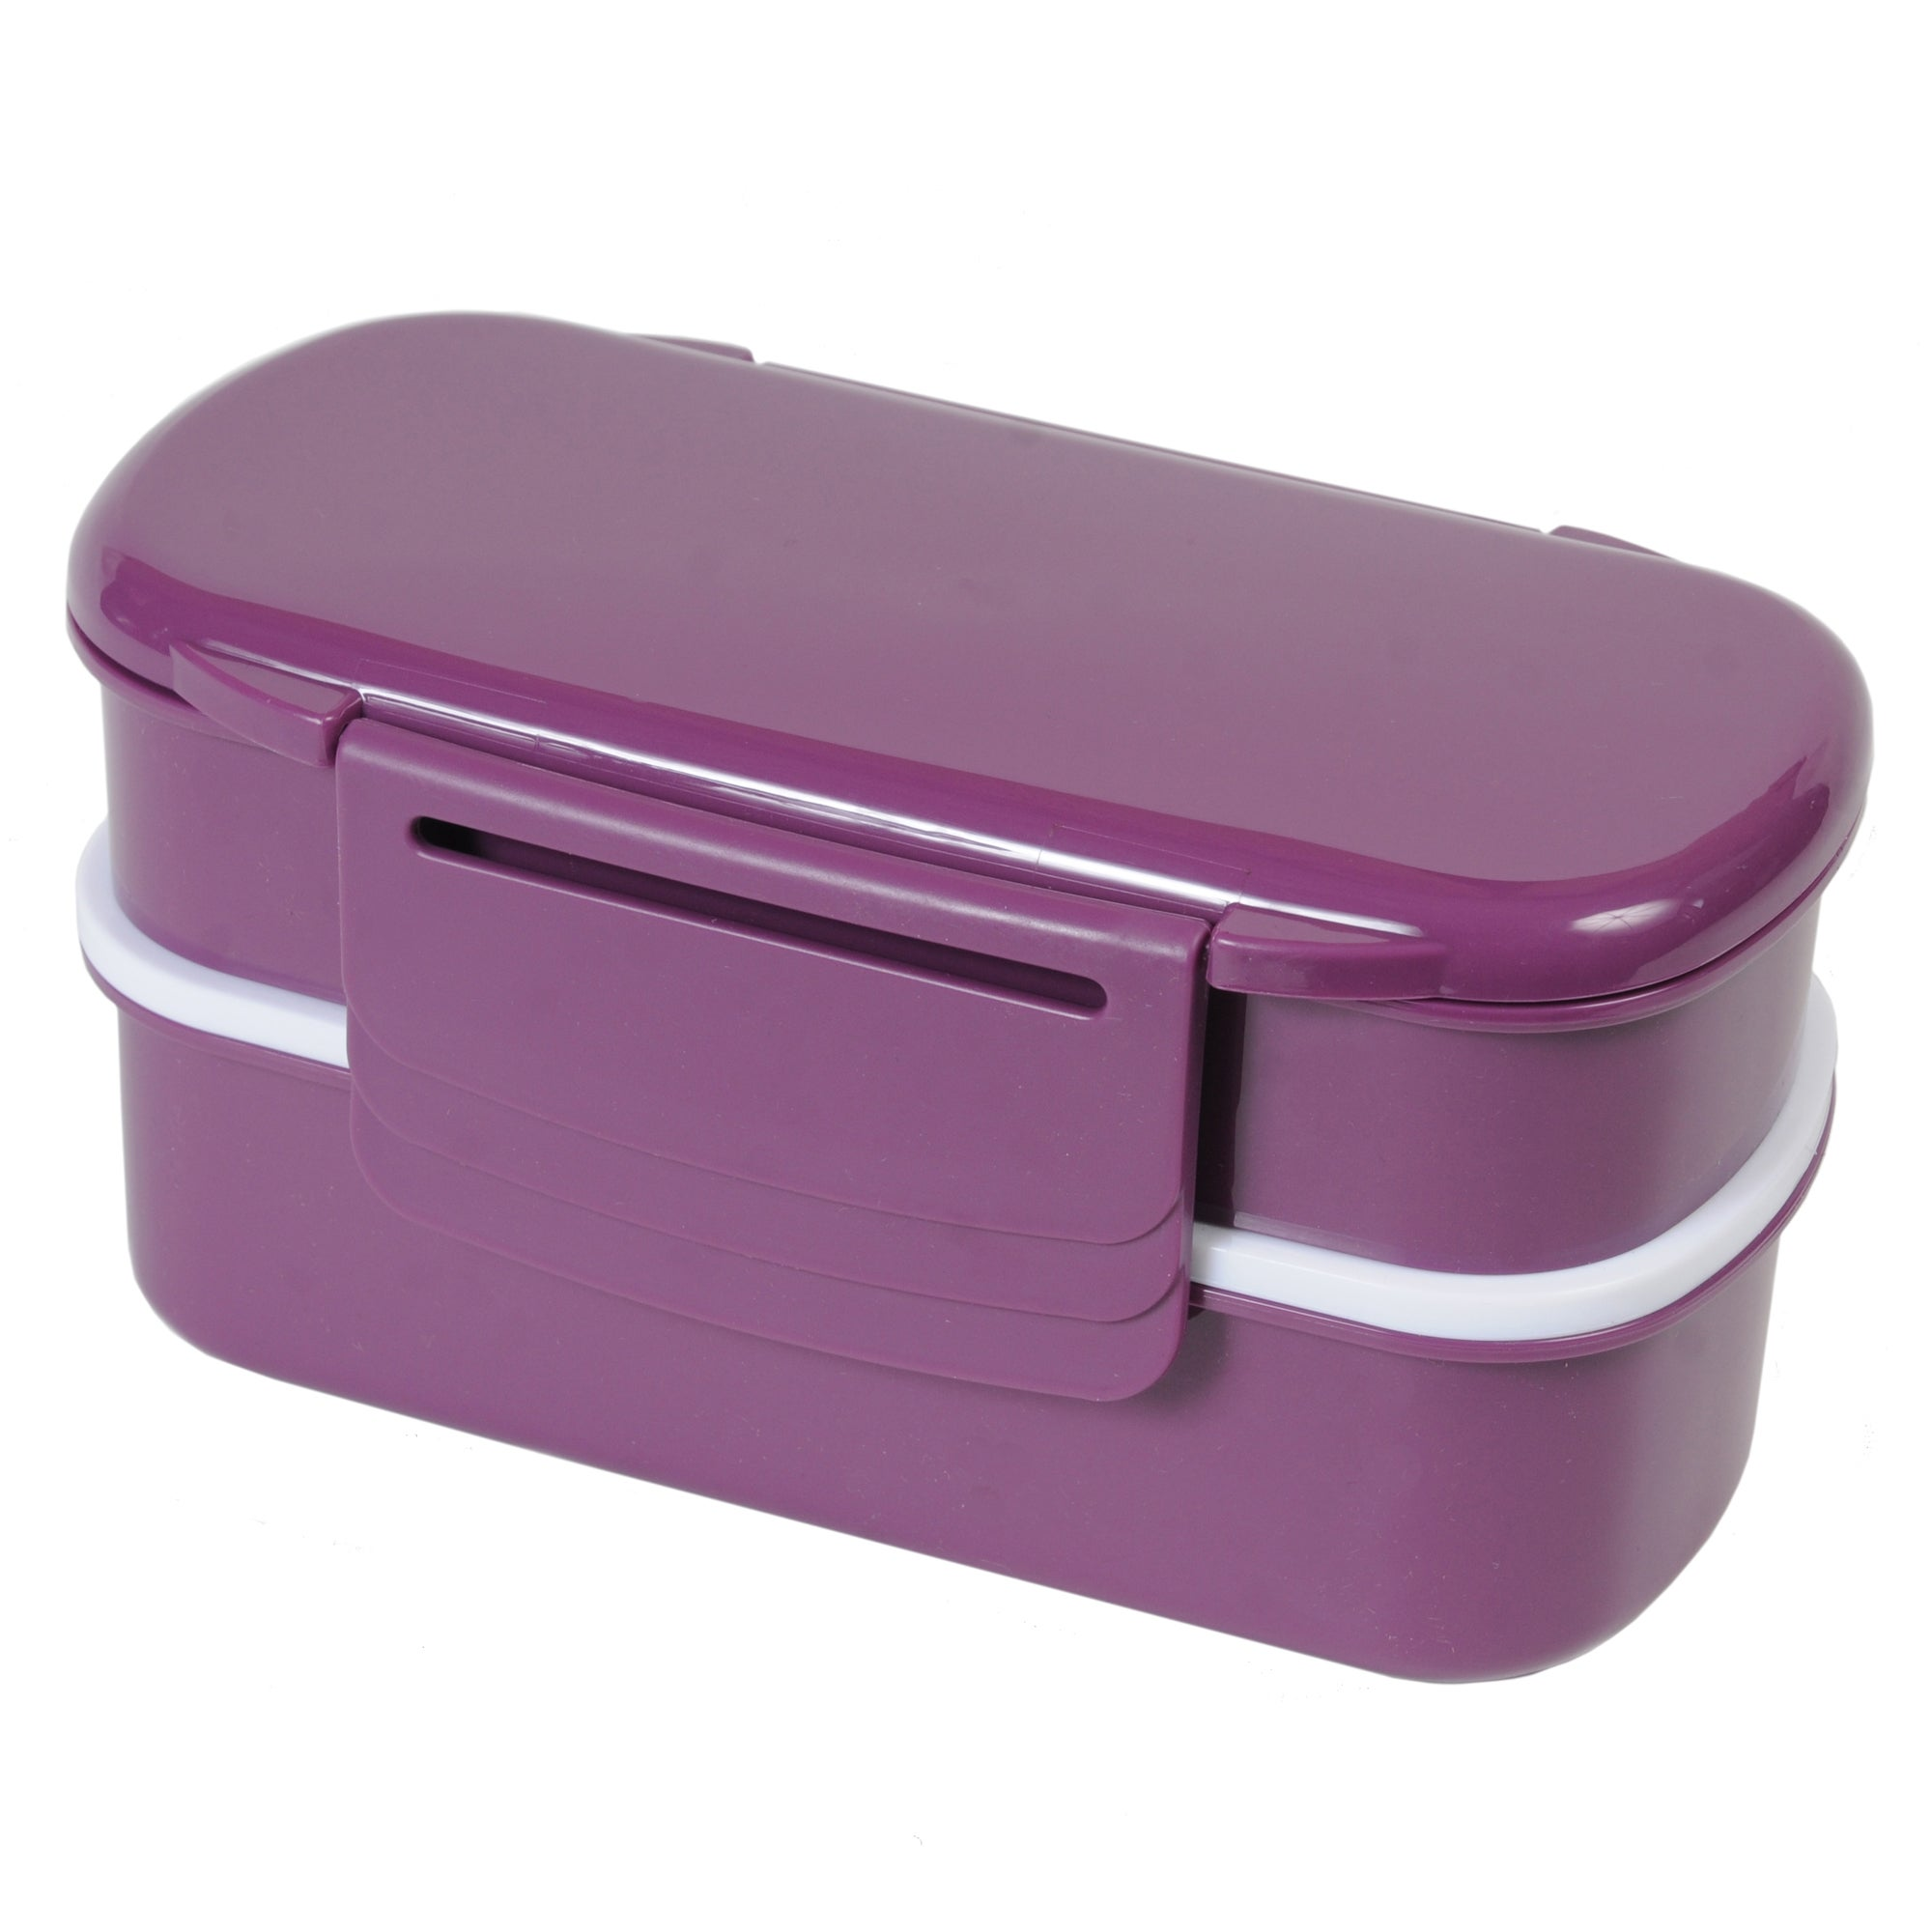 Berry Polar Gear 1.1L 2 Tier Bento Box with Cutlery